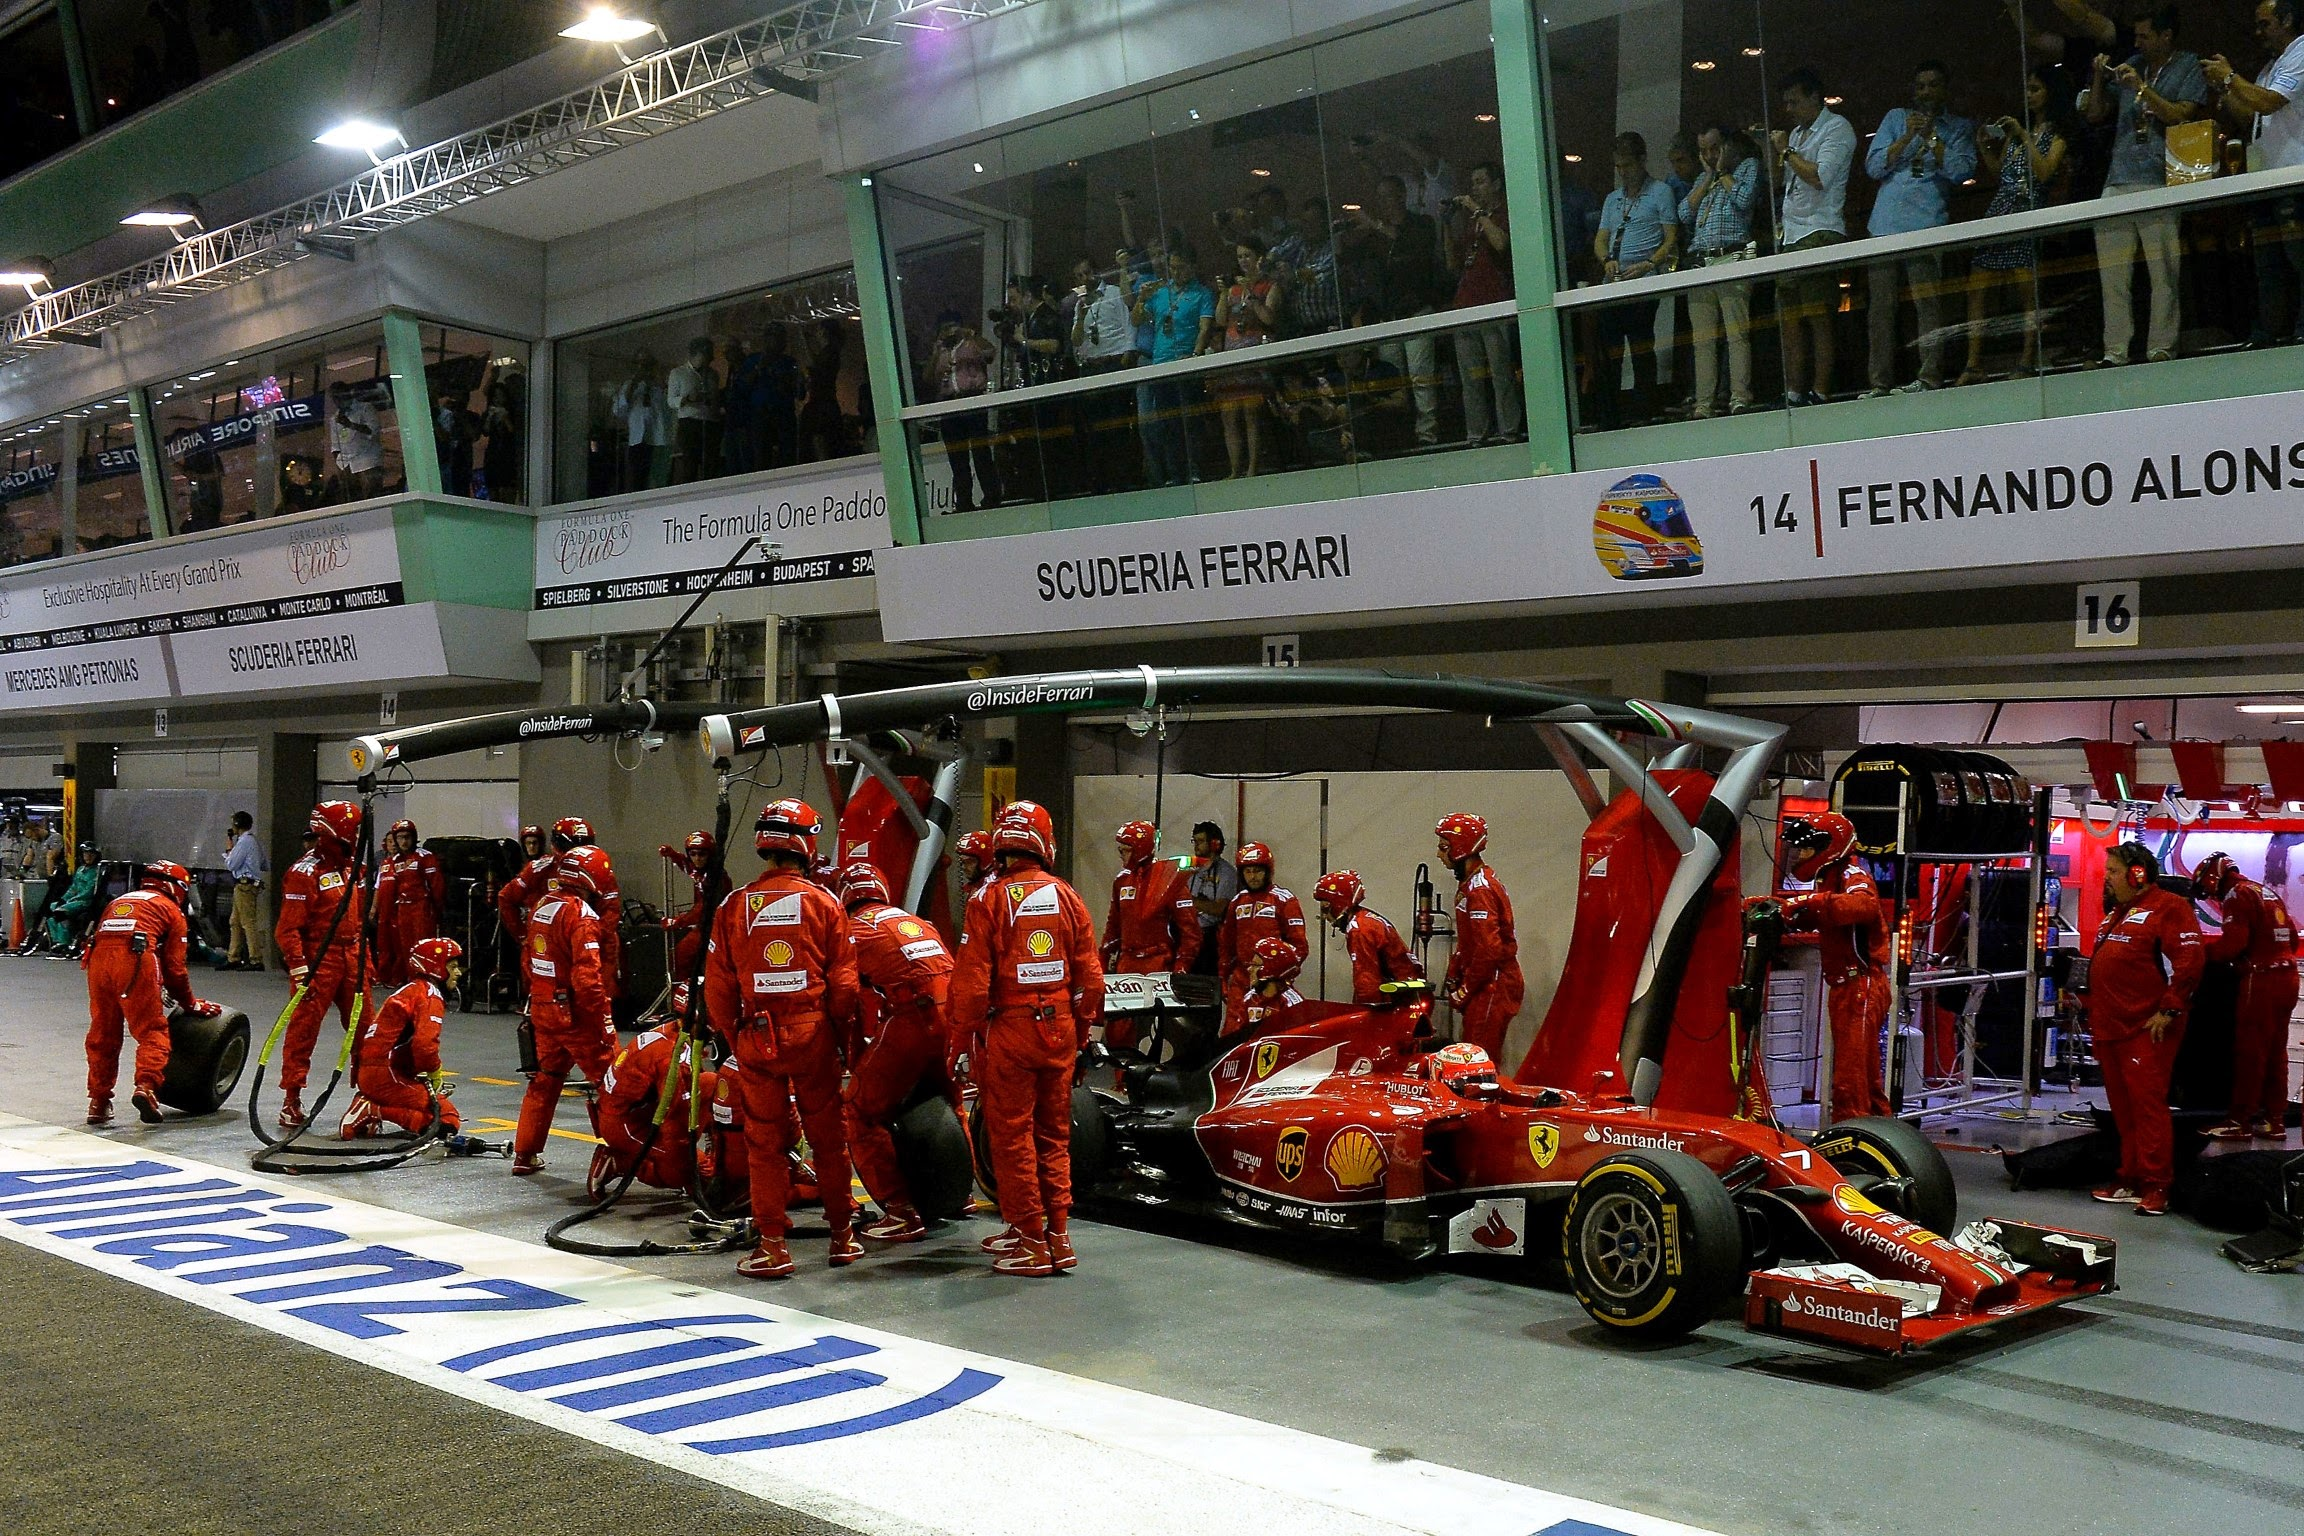 HD wallpaper pictures 2014 Singapore F1 GP | F1-Fansite.com